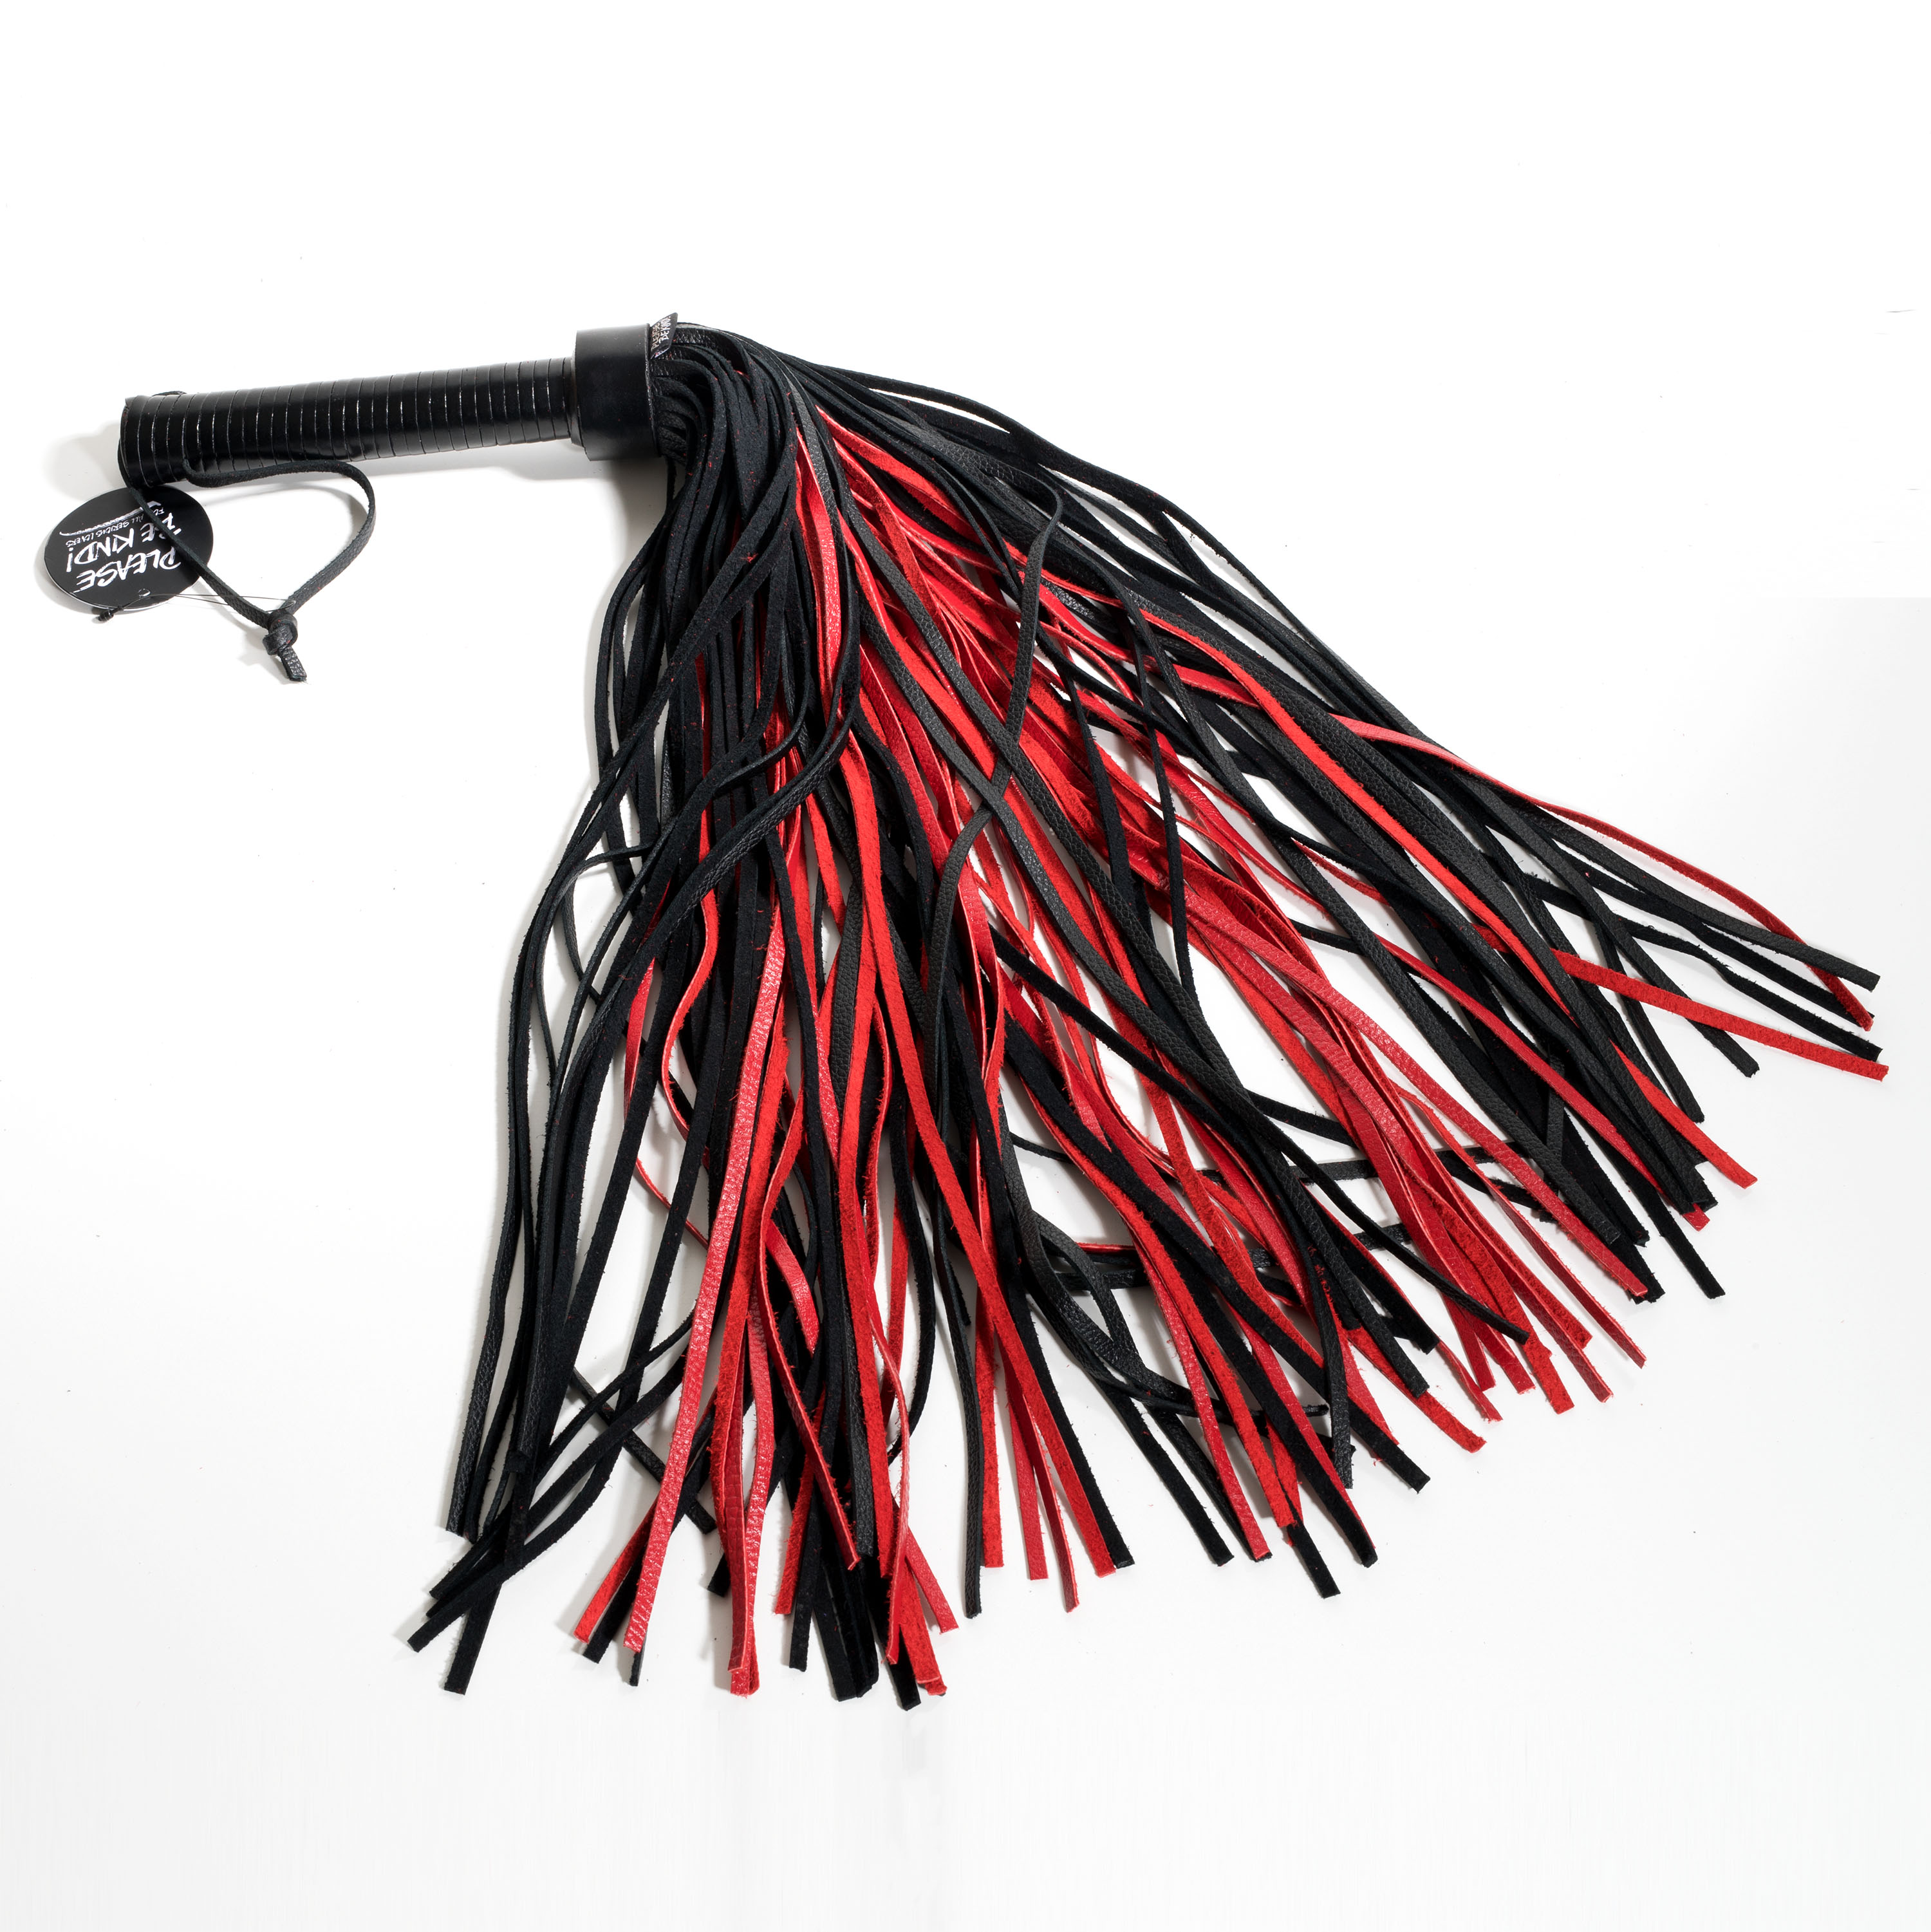 Flogger With Leather Handle & Stripes Black & Red